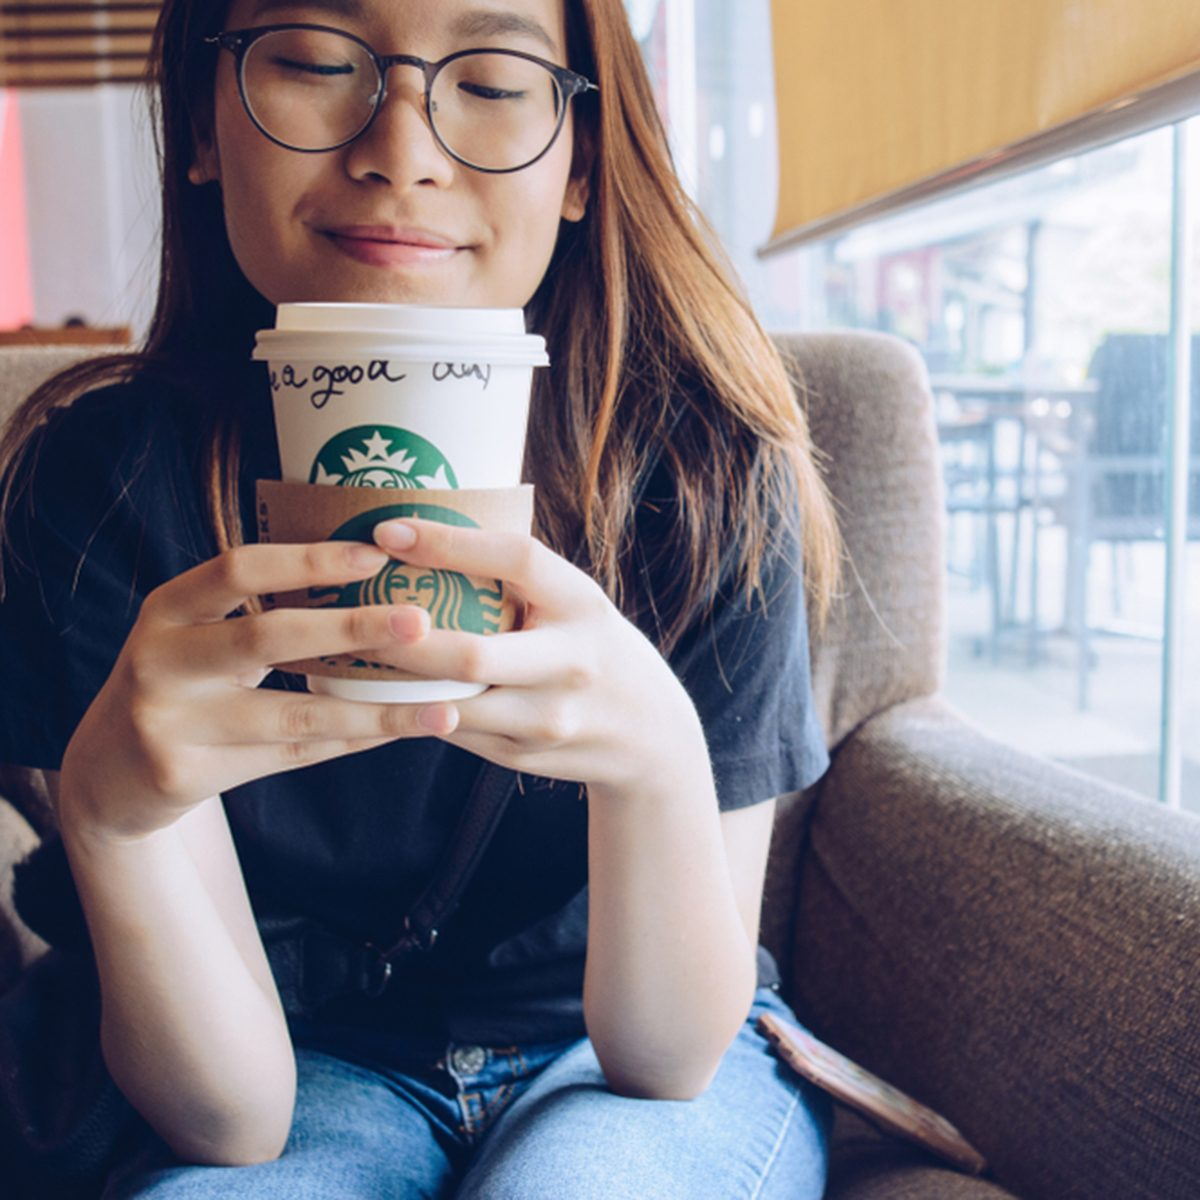 Chiang Rai, Thailand : May-23-2018 : Happy Asian girl holding a paper cup of Starbucks coffee in Starbucks coffee store.; Shutterstock ID 1101144779; Job (TFH, TOH, RD, BNB, CWM, CM): TOH